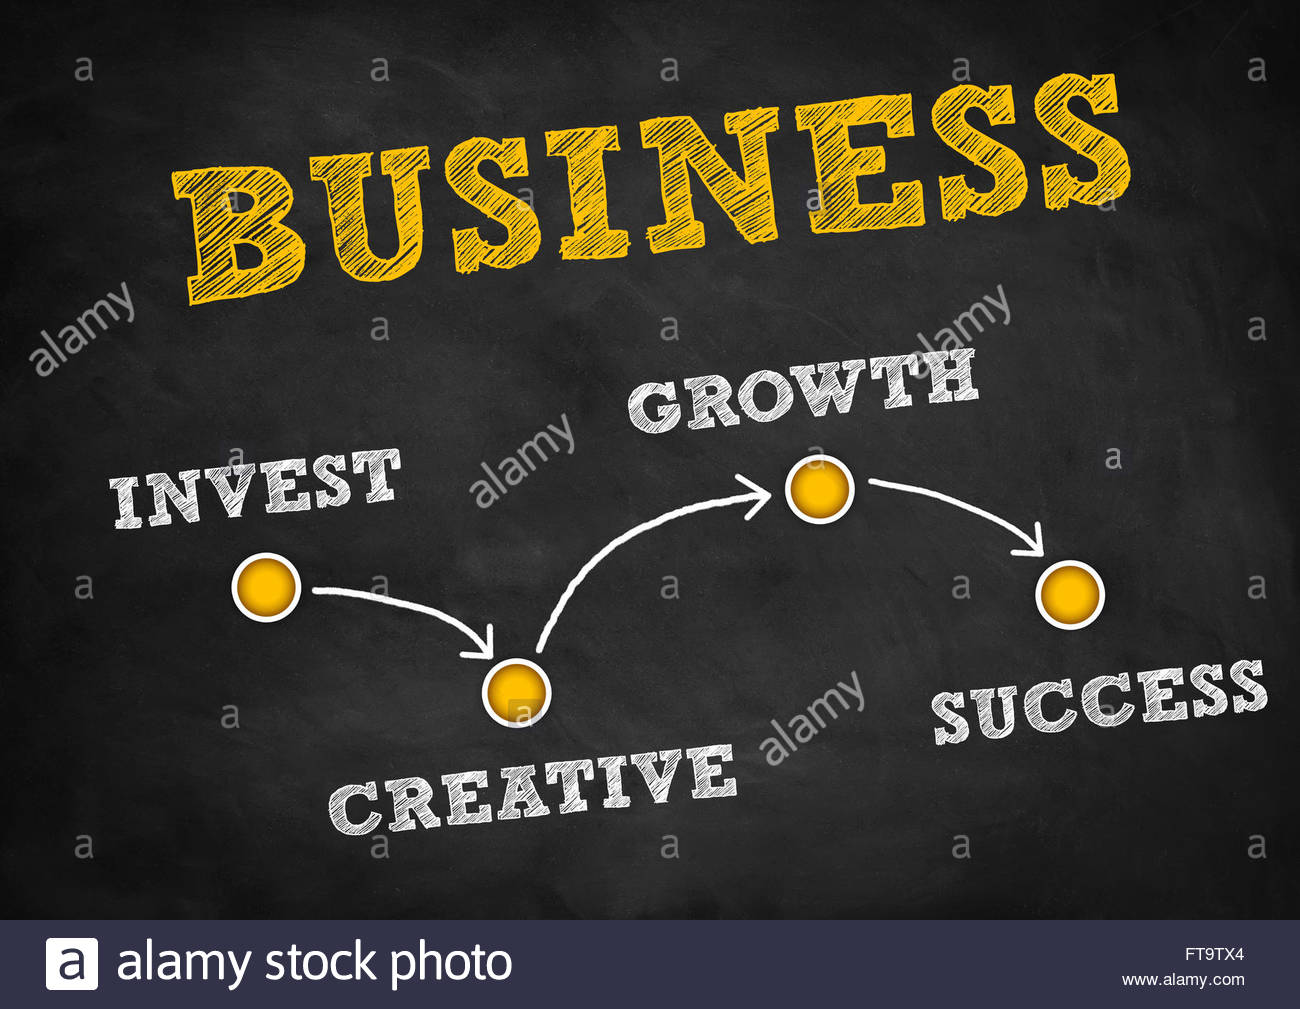 Business - Stock Image